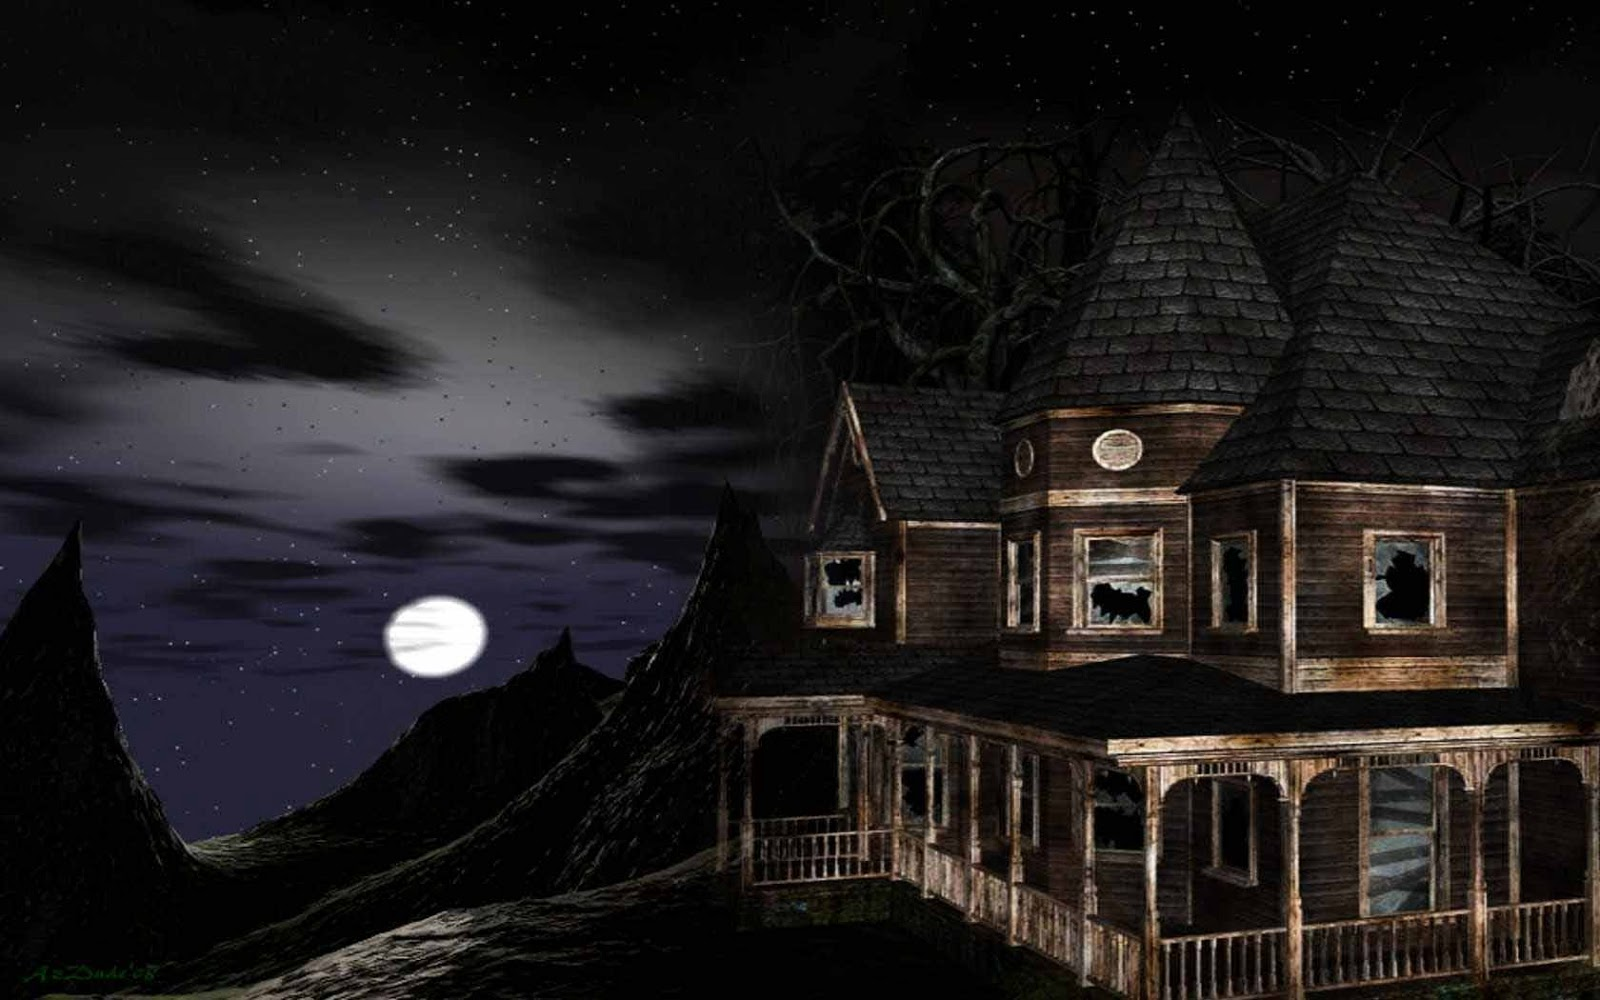 Haunted house hd wallpapers w a l l p a p e r2014 for House photos hd